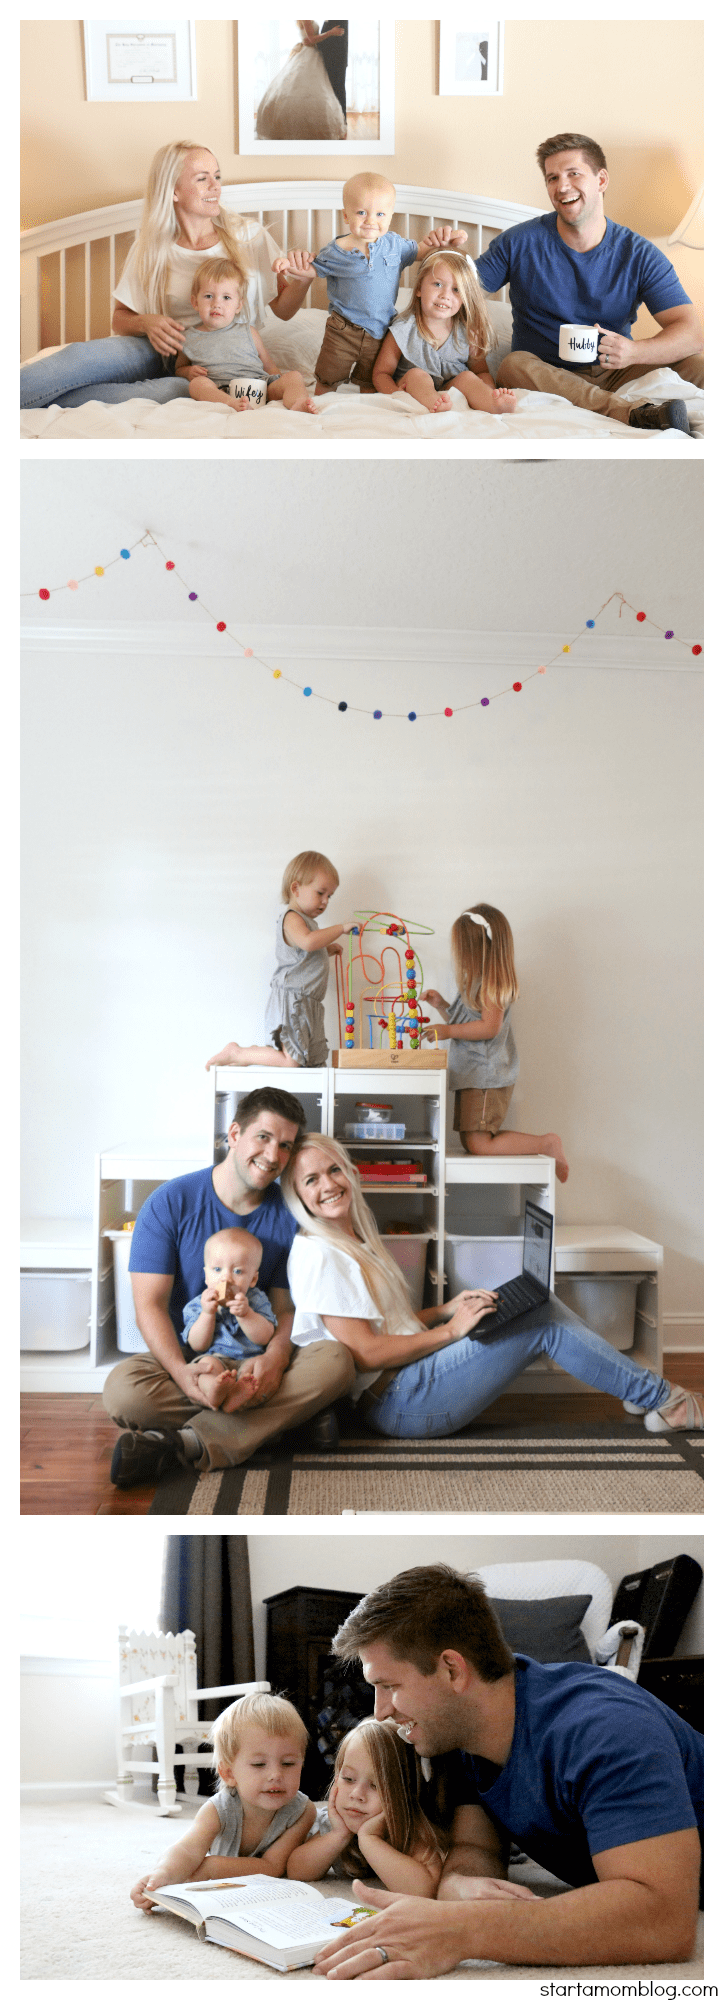 Family of Five Photo Ideas Playroom Ideas Family Photoshoot Coffee #photoshoot #family #pictures #coffee